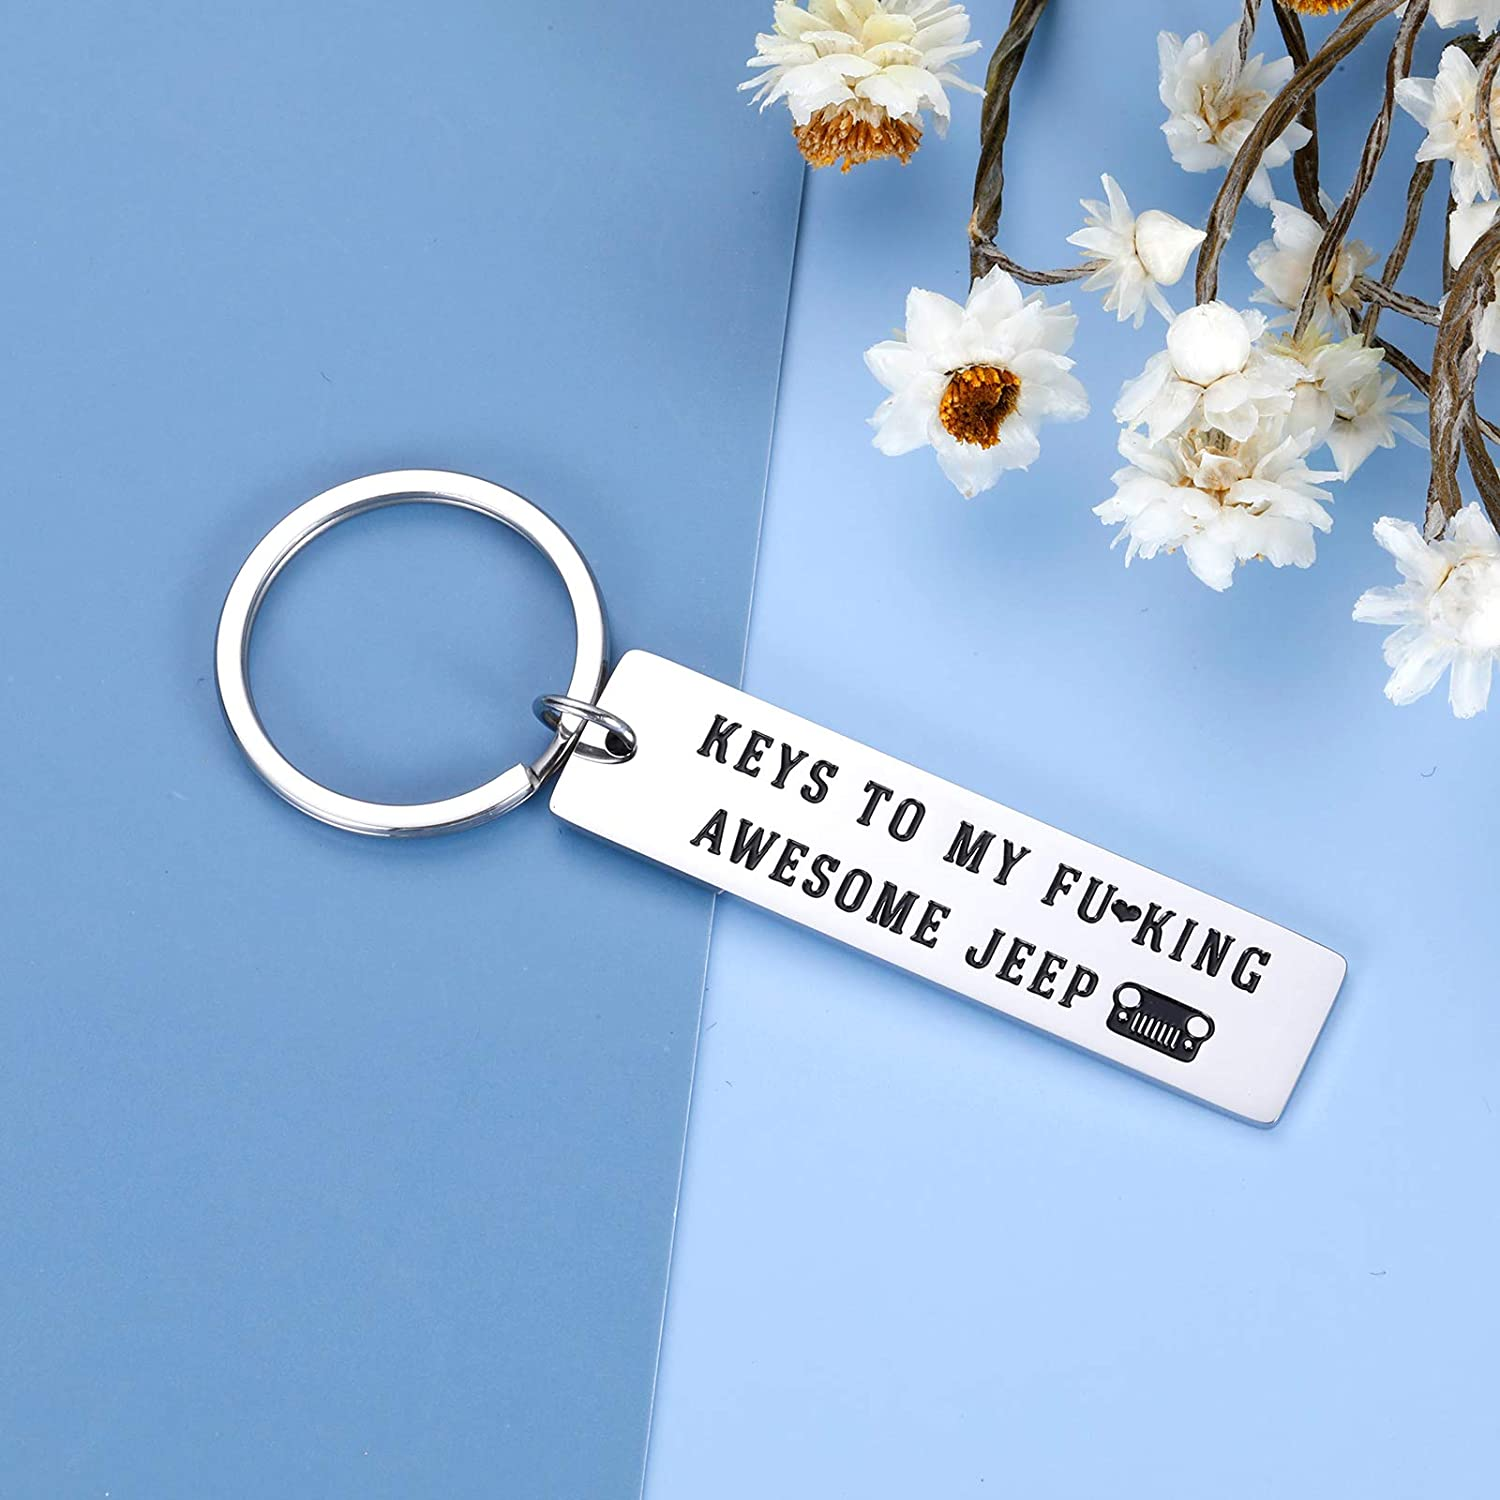 Jeep Lover Keychain Funny Gifts for Men Women Boyfriend Girlfriend Best Friends Husband Wife Soul Jeepsy Enthusiast Christmas Birthday Valentine Gifts for Him Her Daughter Son